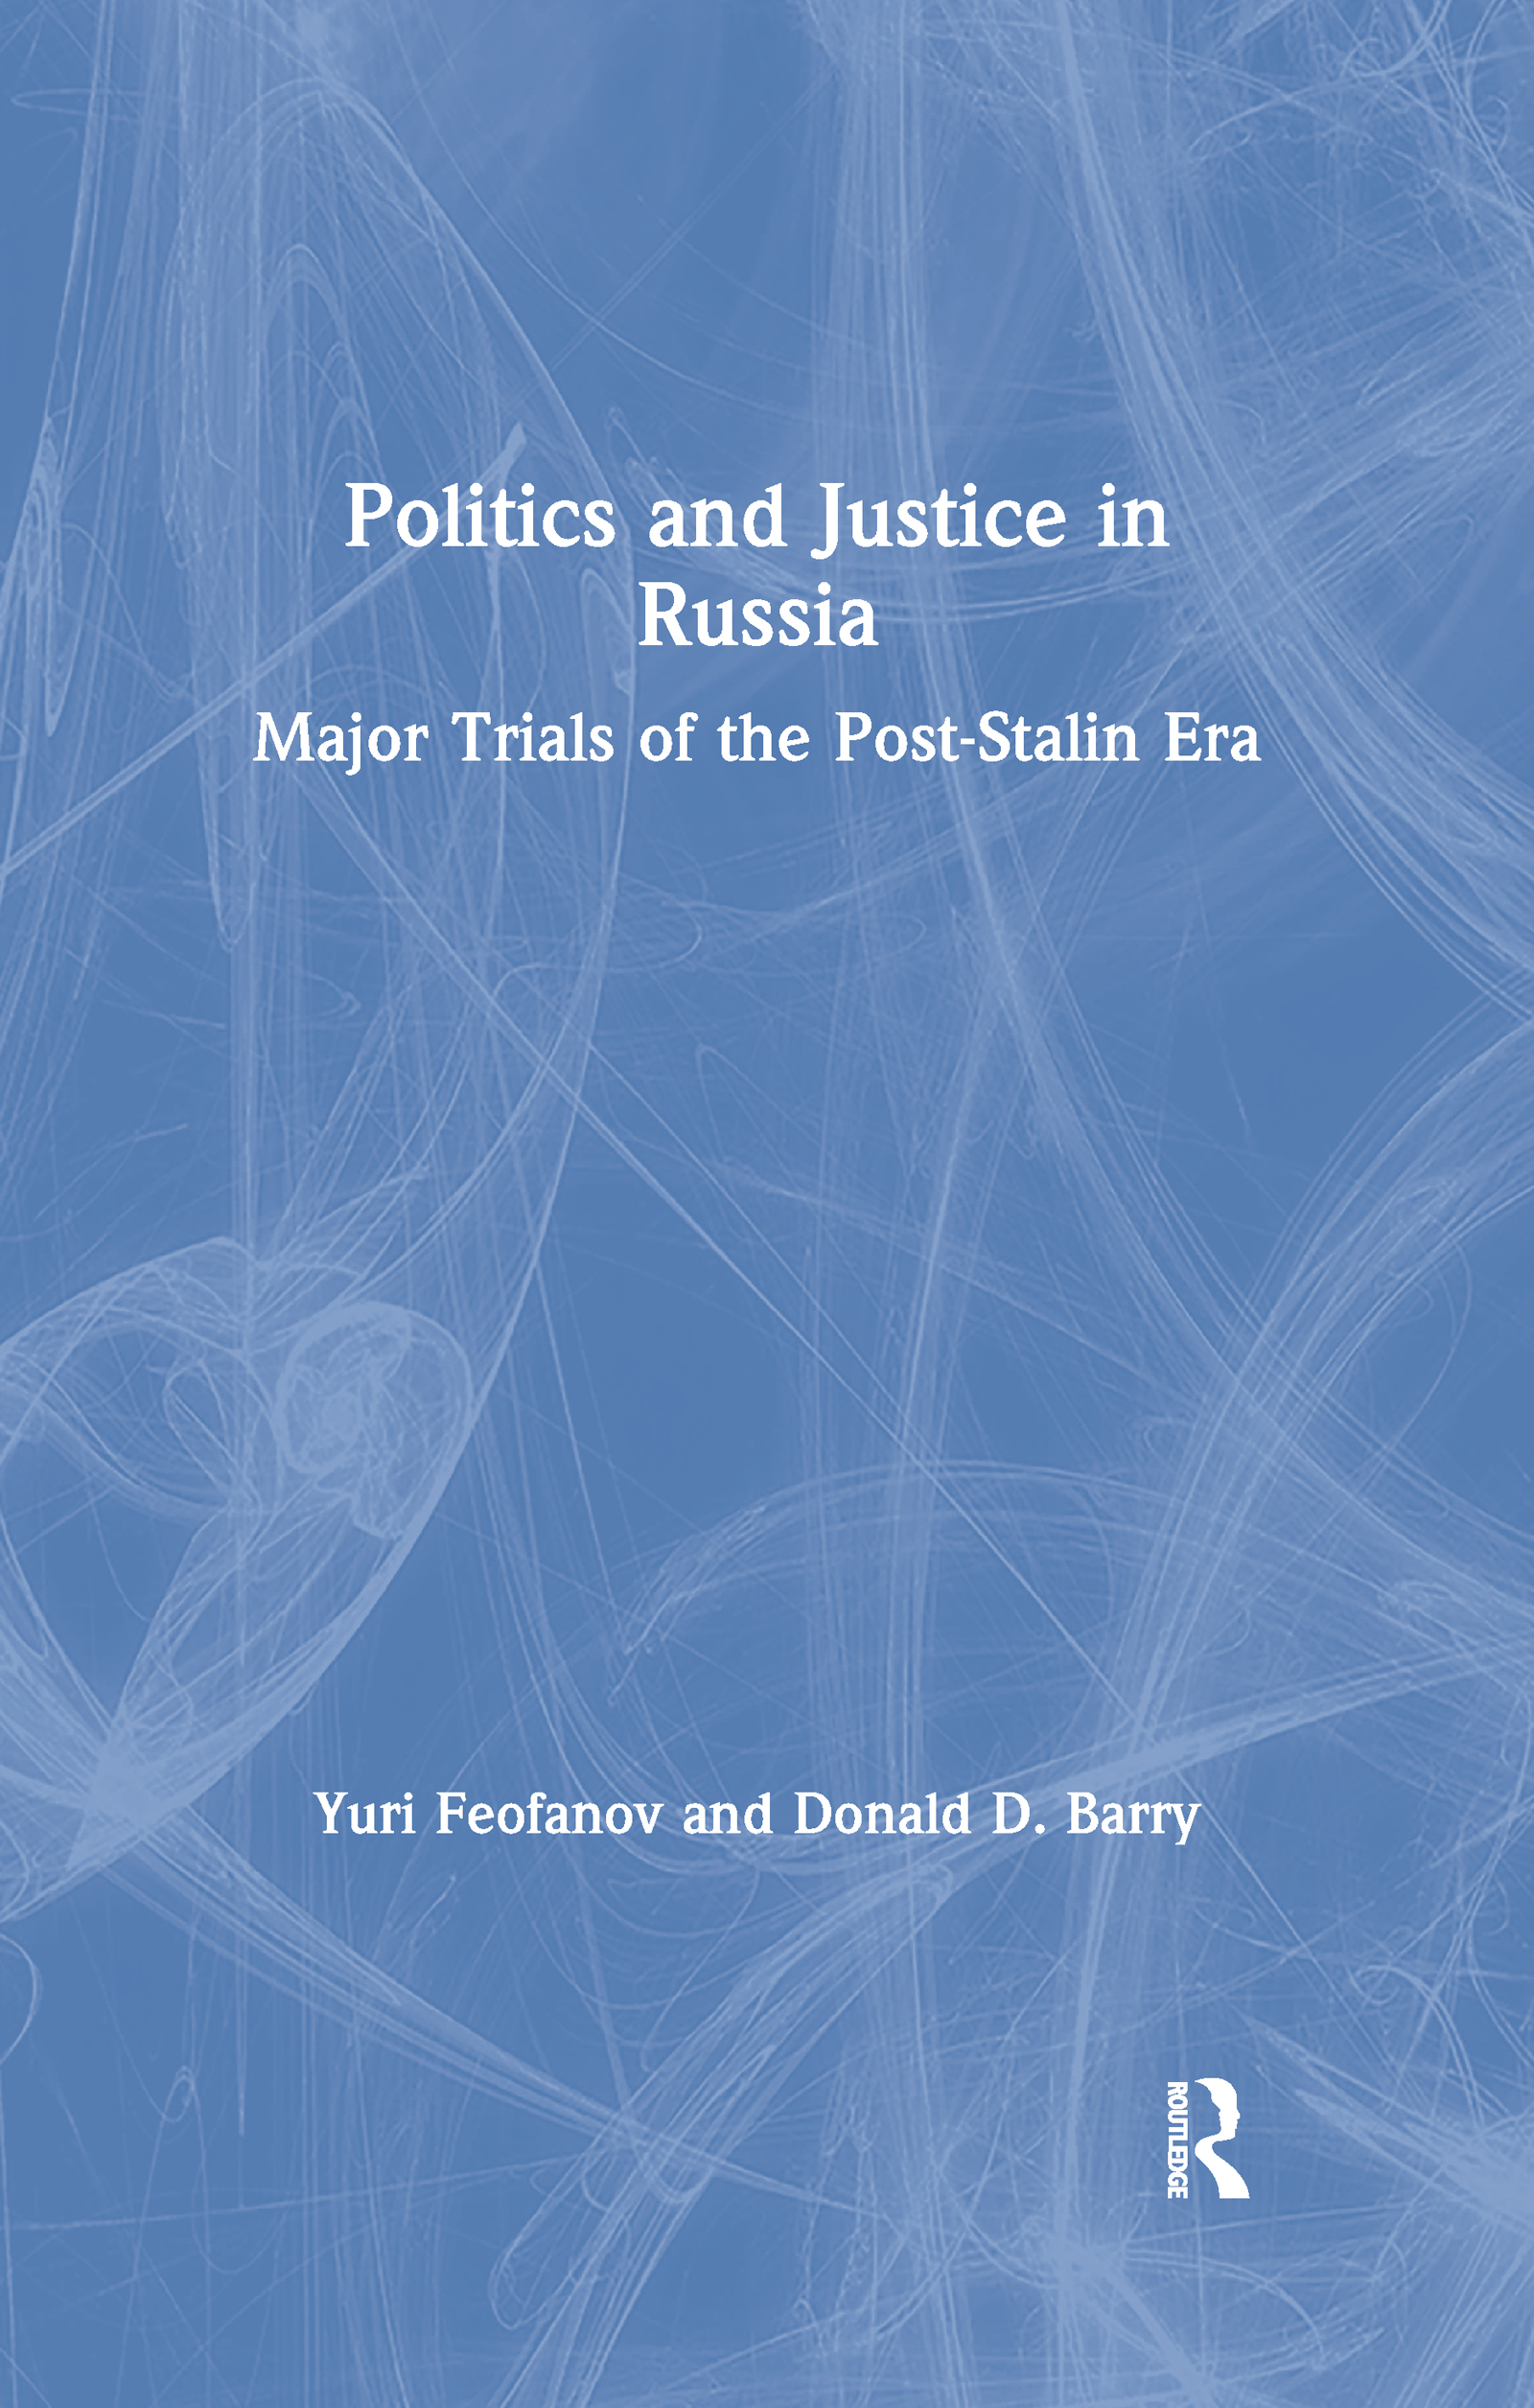 Politics and Justice in Russia: Major Trials of the Post-Stalin Era: Major Trials of the Post-Stalin Era, 1st Edition (Paperback) book cover